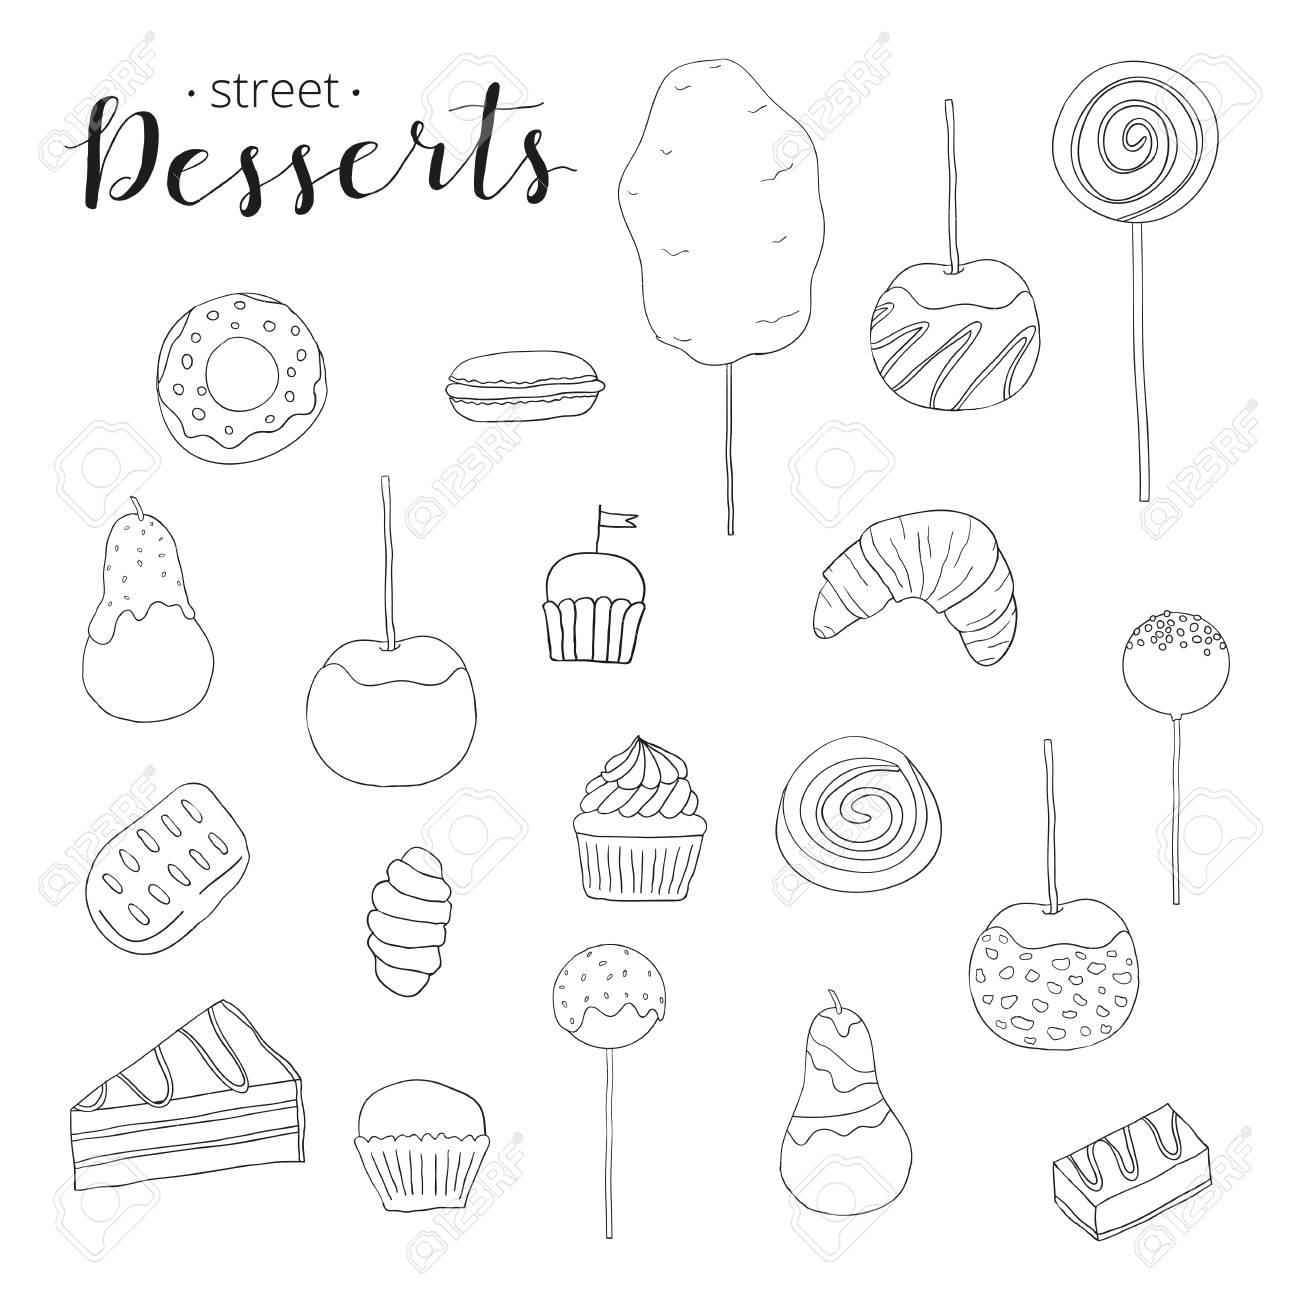 Collection Of Hand Drawn Desserts Cotton Candy Caramel Apple Royalty Free Cliparts Vectors And Stock Illustration Image 52369988